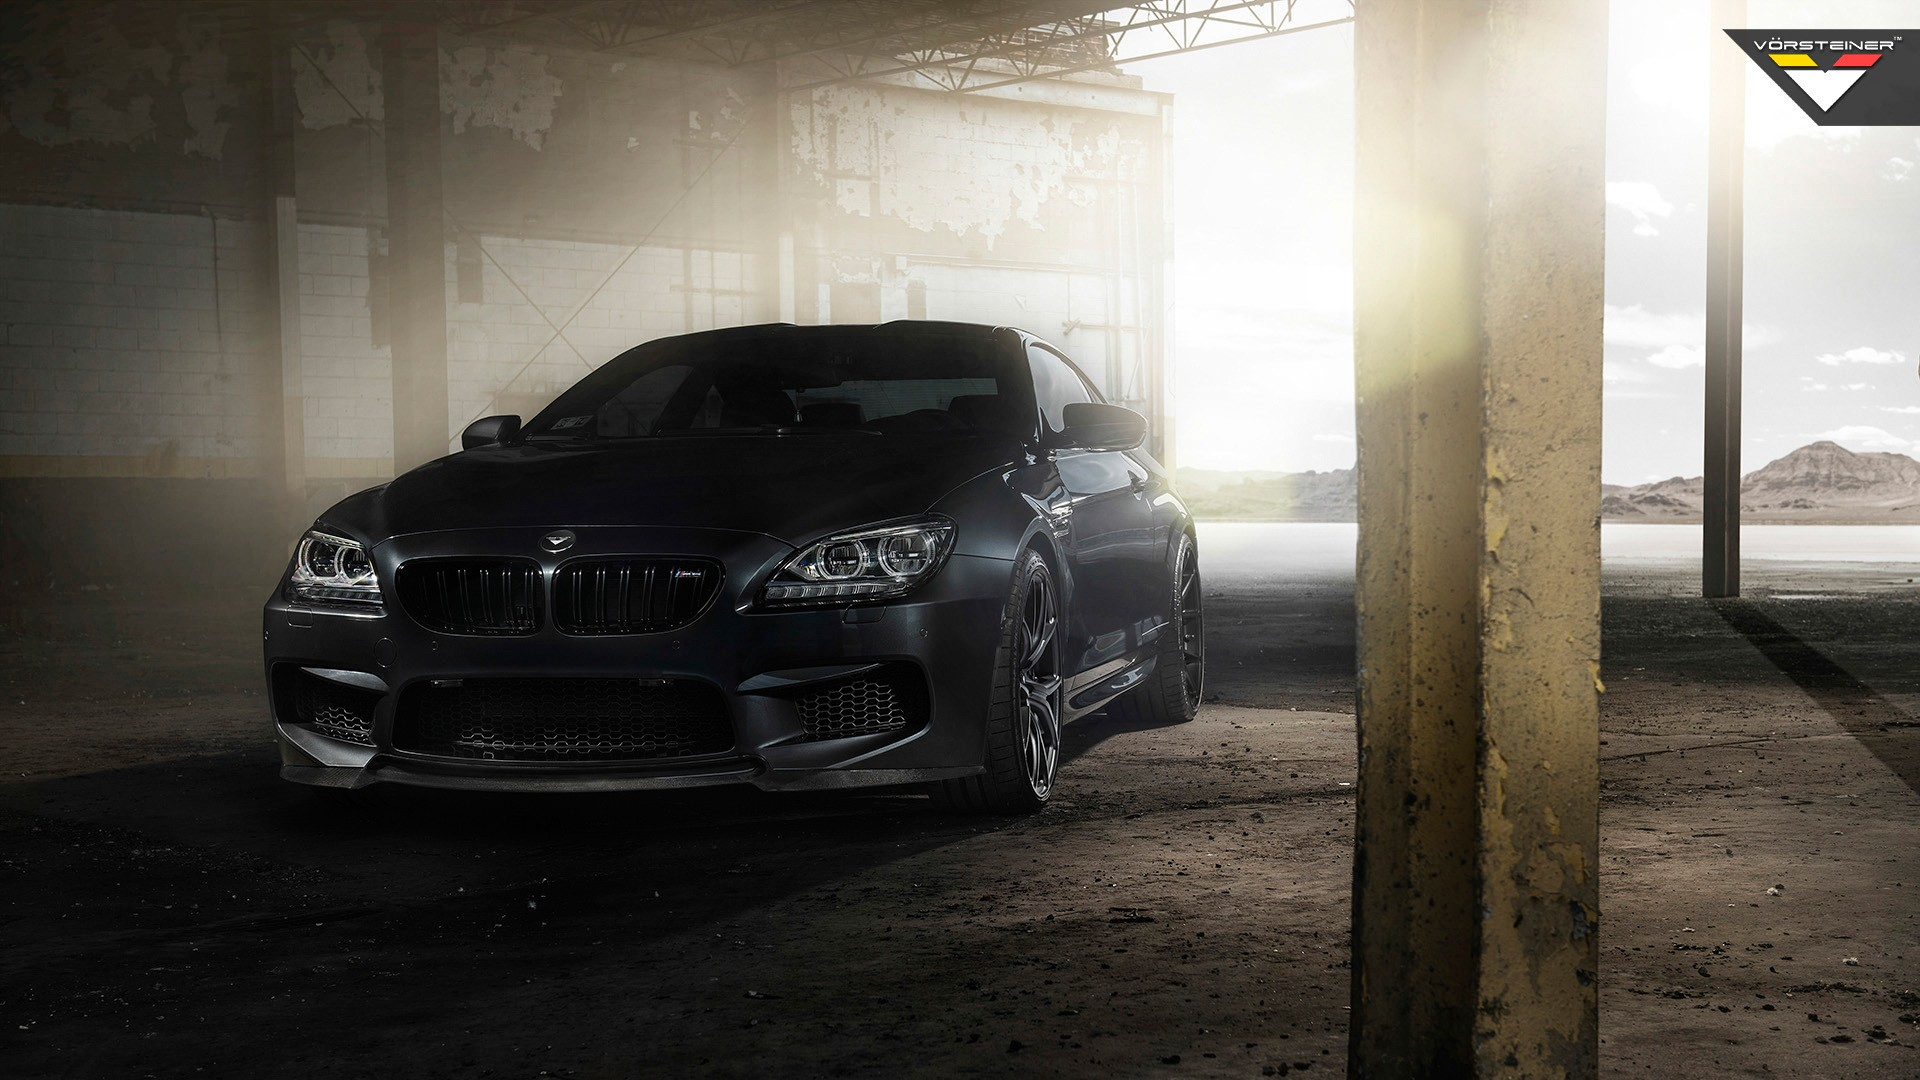 BMW M6 Gran Coupe >> 2014 Vorsteiner BMW M6 Gran Coupe Wallpaper | HD Car Wallpapers | ID #4058